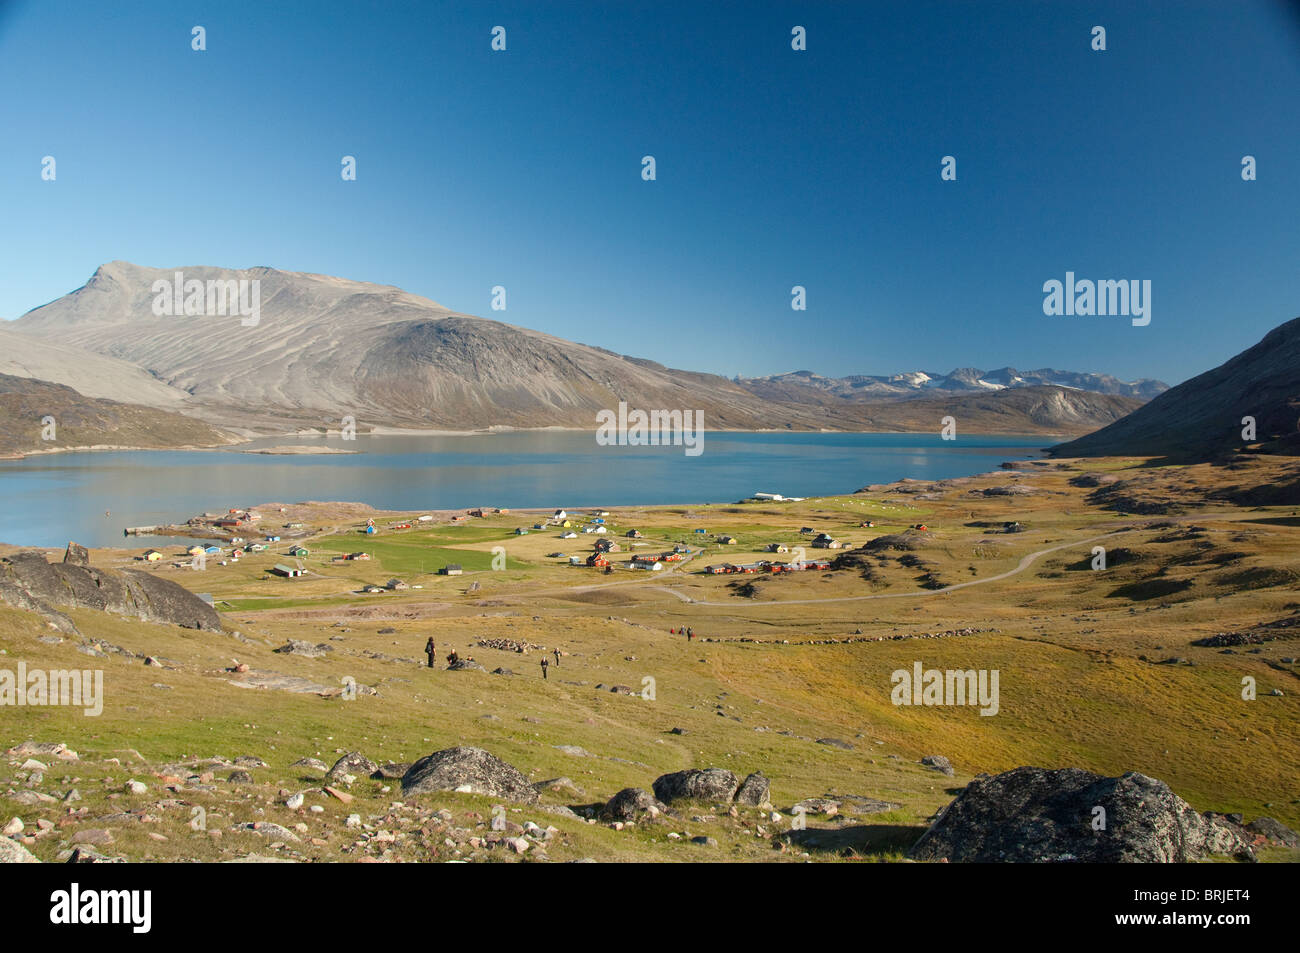 Greenland, Igaliku. Small settlement on the Igaliku Fjord. Best known for ruins of Gardar. - Stock Image